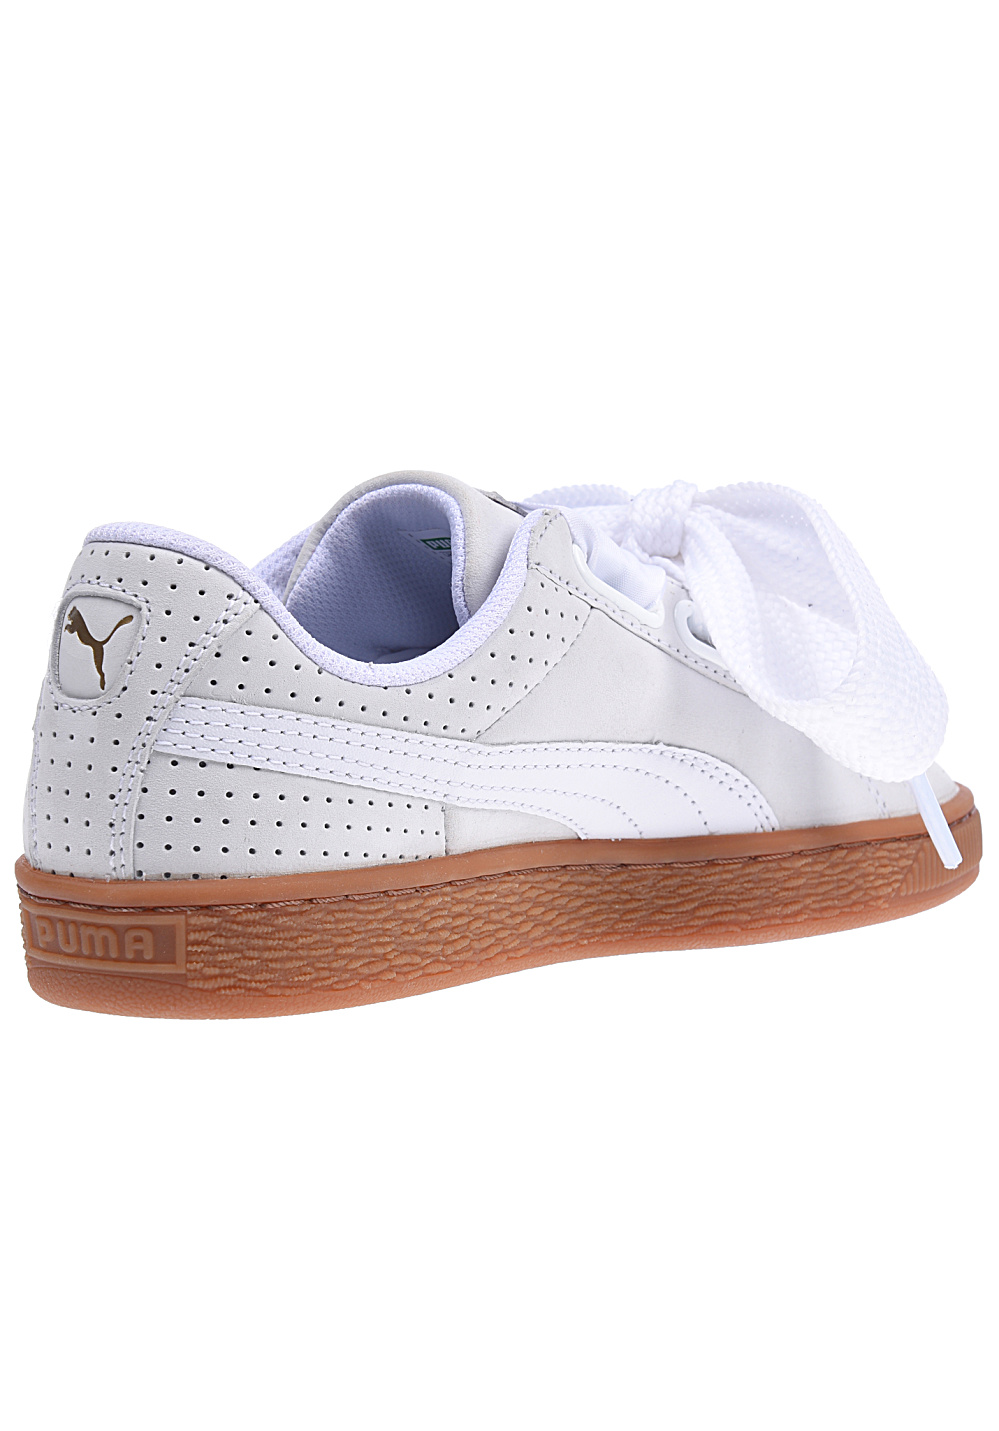 5b296d366e4 Next. -40%. Puma. Basket Heart Perf Gum - Sneakers for Women. Regular  Price  Save ...